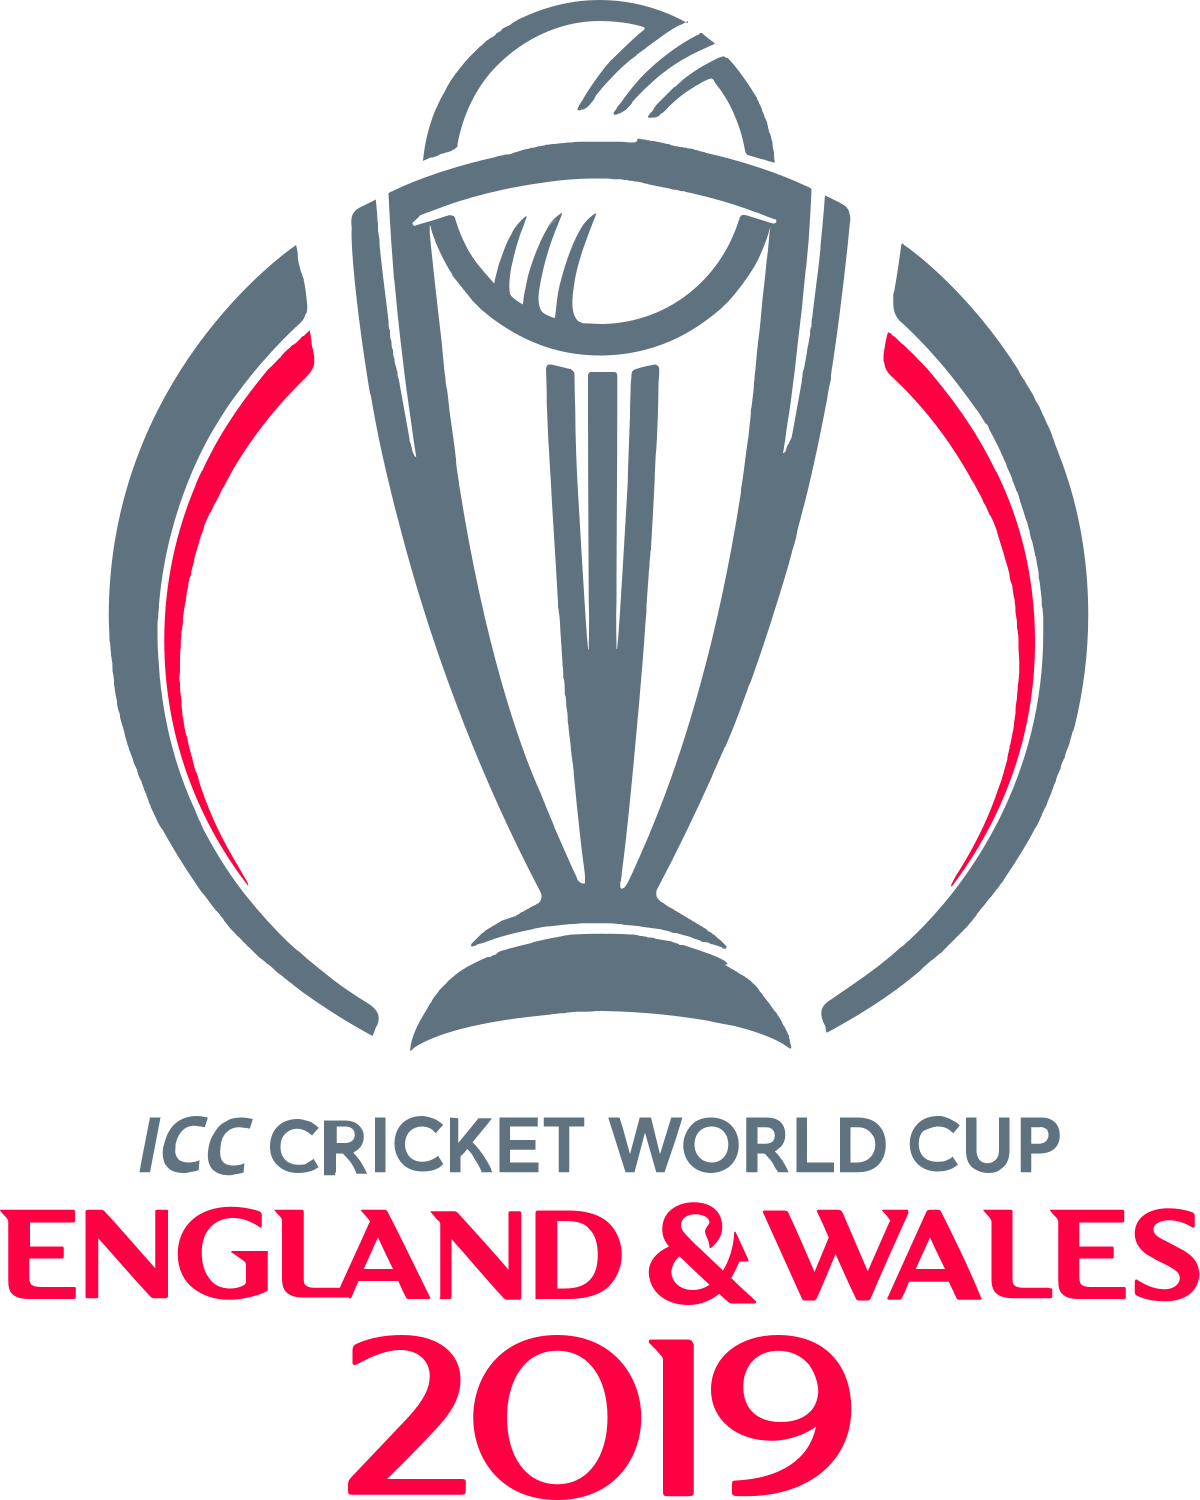 Cricket Is Crazily Followed In Many Countries Of The World Cricket Playing Nations Meet In Every Four Years To Grab Trophy Of World Cup Live World Cup Tickets